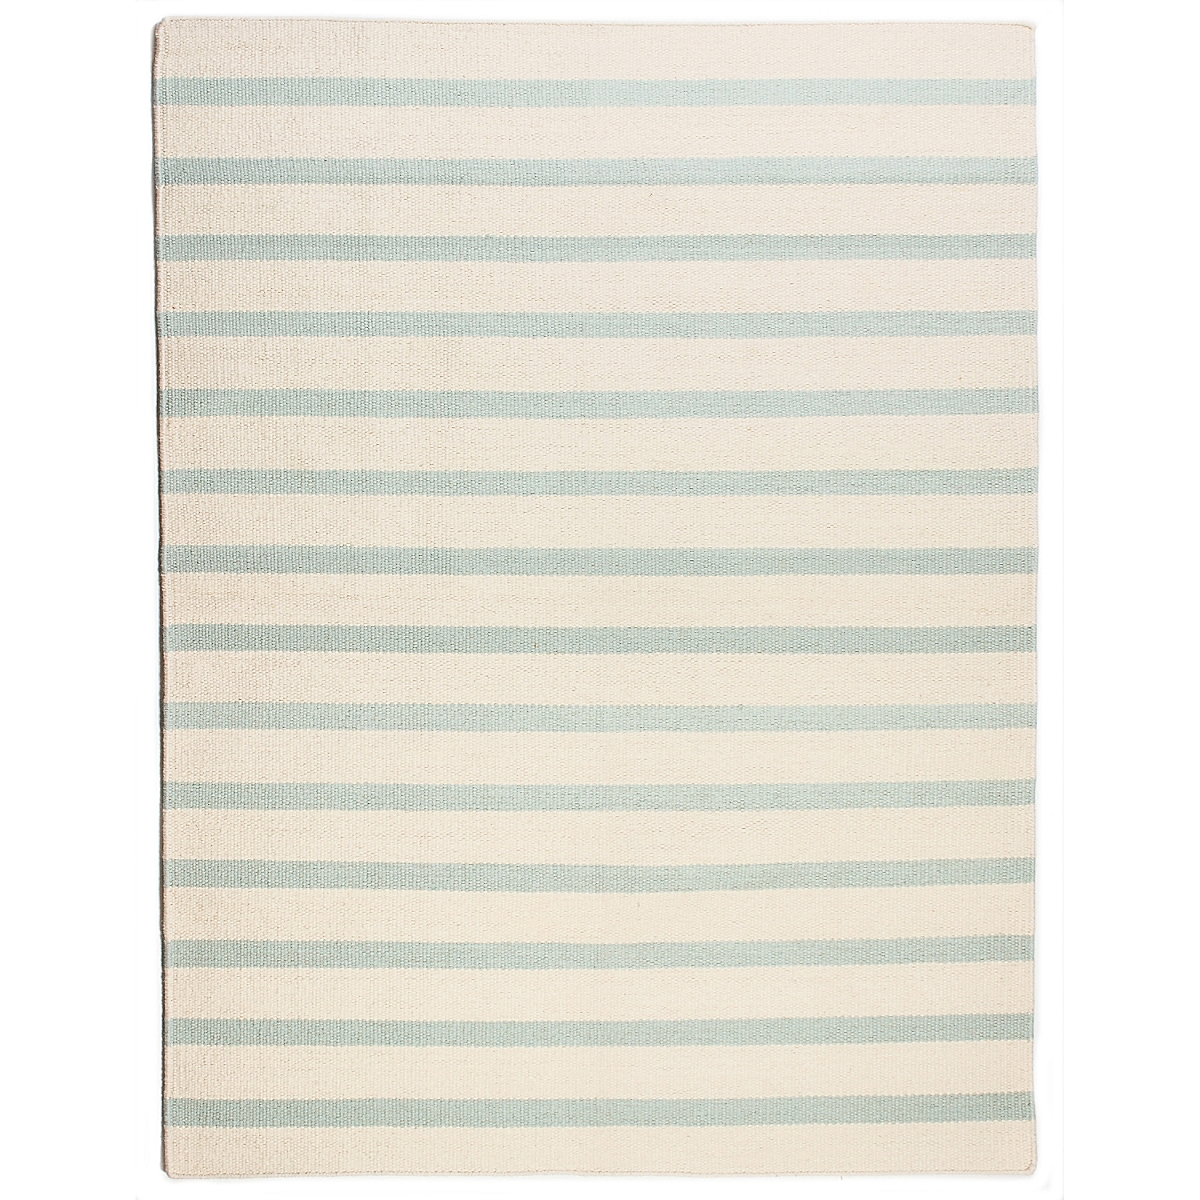 Hooper Strait Wool Berber Striped Rug